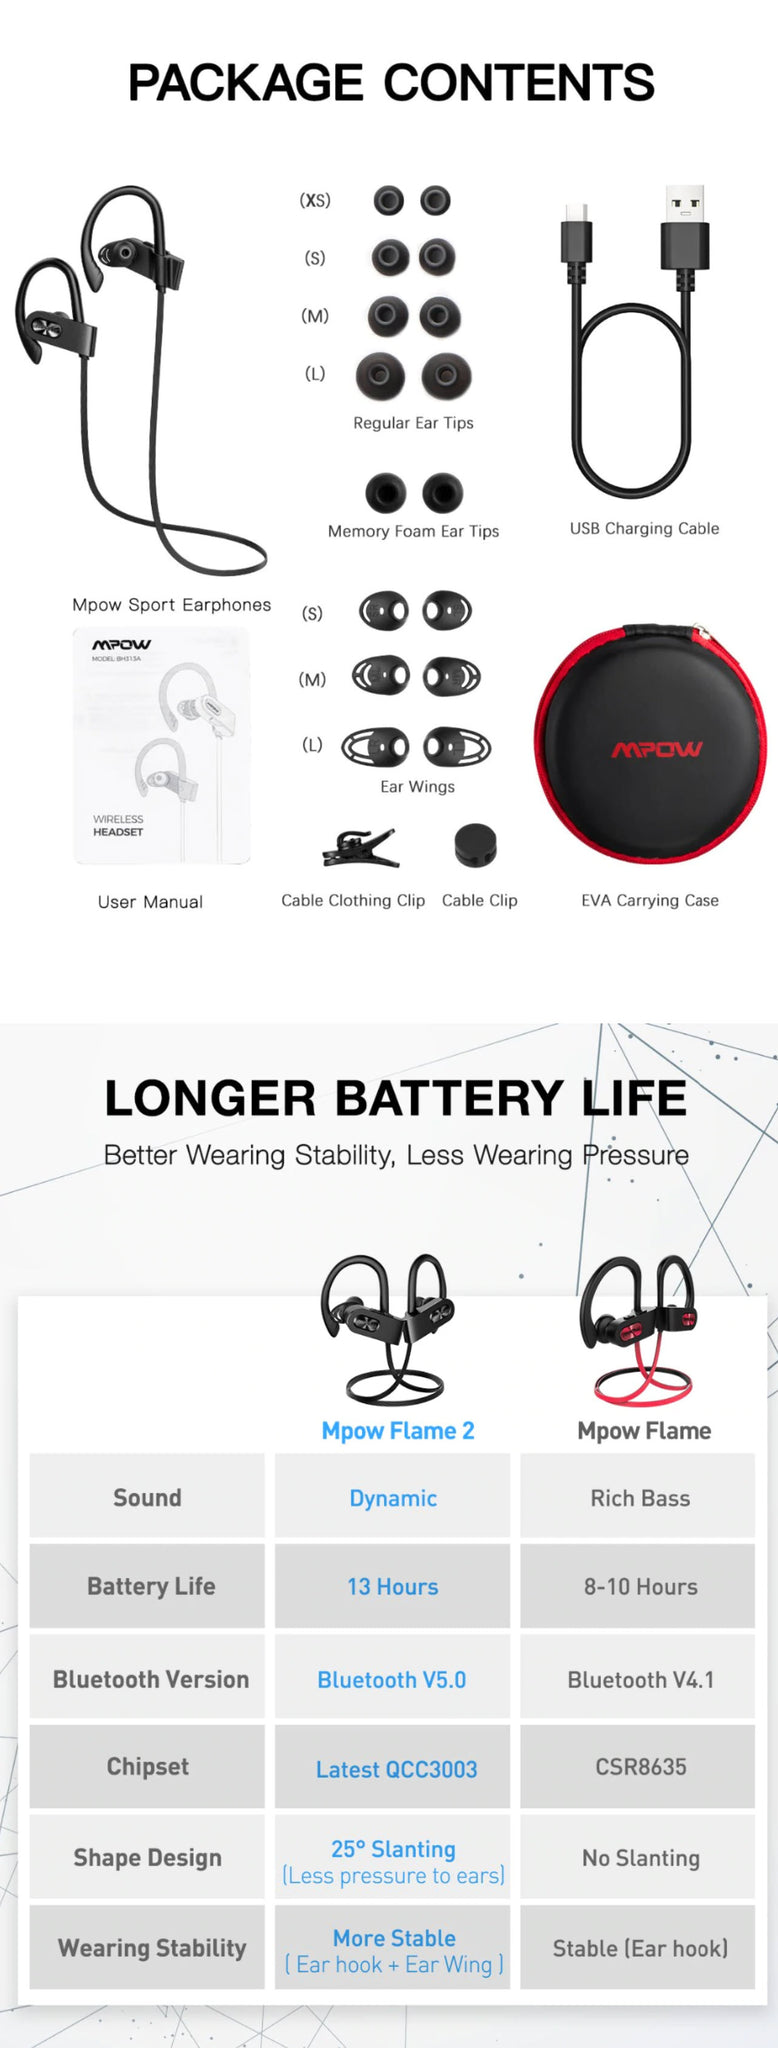 MPOW Flame 2 Sport Bluetooth Earphones Package Contents Longer Battery Life